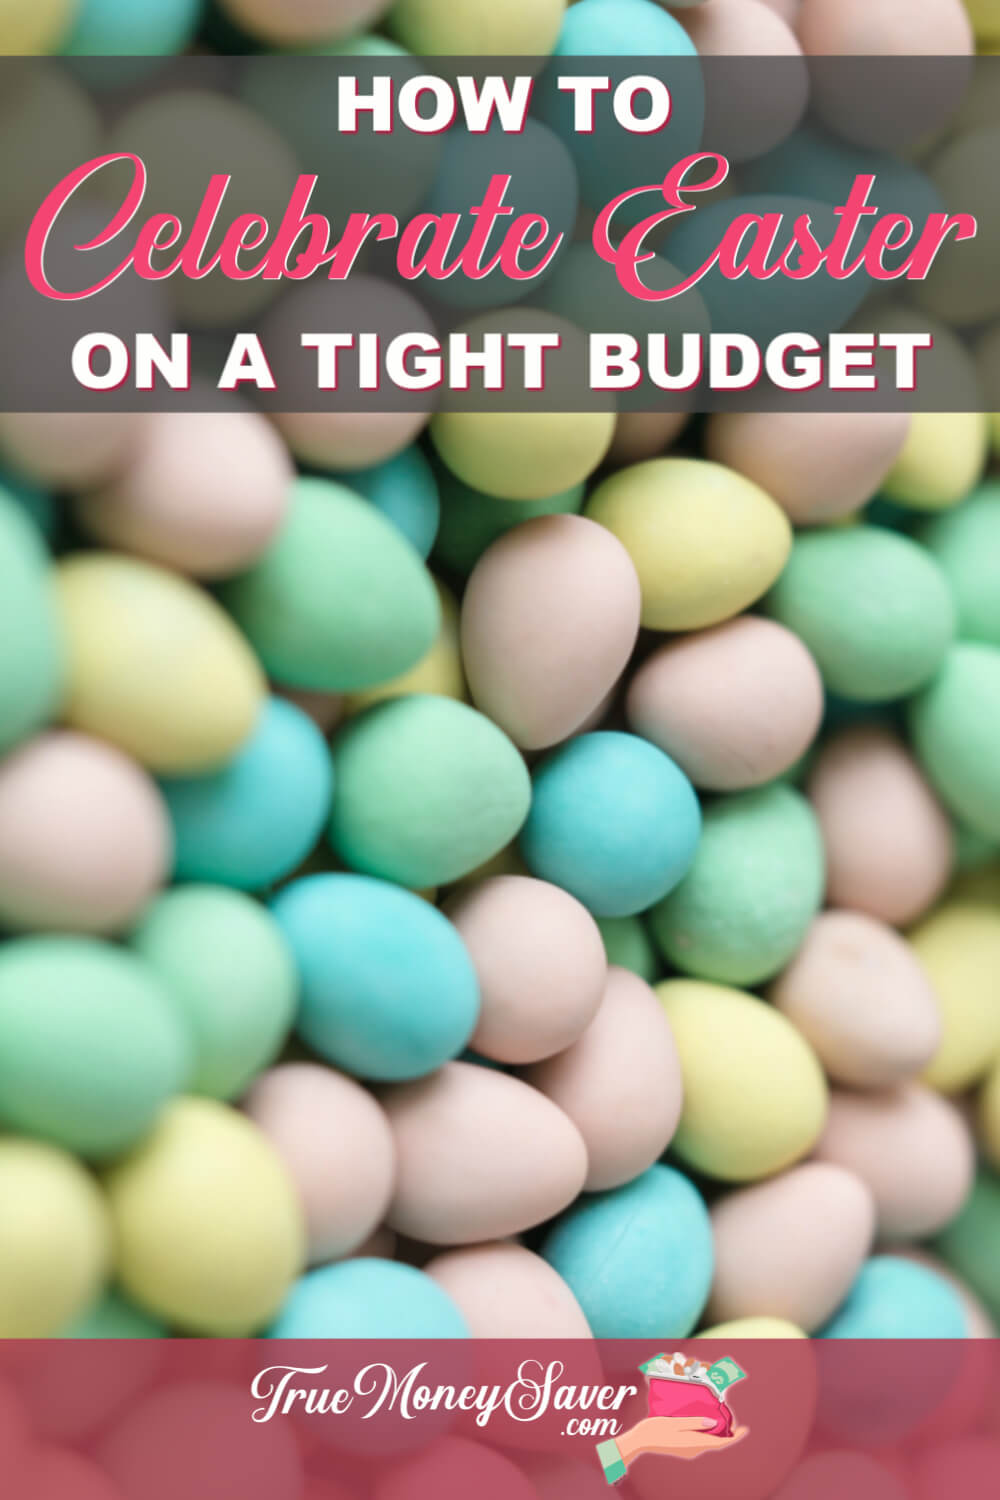 Celebrating Easter doesn\'t have to drain your bank account! Use these frugal Easter ideas and money-saving tips to make these best Easter ever! Plus, learn how to get the best kids Easter outfits for church. And, use these frugal Easter basket ideas to save more money! #truecouponing  #savingmoney  #easterfun  #budgeting  #debtfree #easter #frugal #frugaleaster #frugaleastergiftideas #frugaleasterbasket #easteroutfit #easteroutfits #easteroutfitideas #cheapeaster